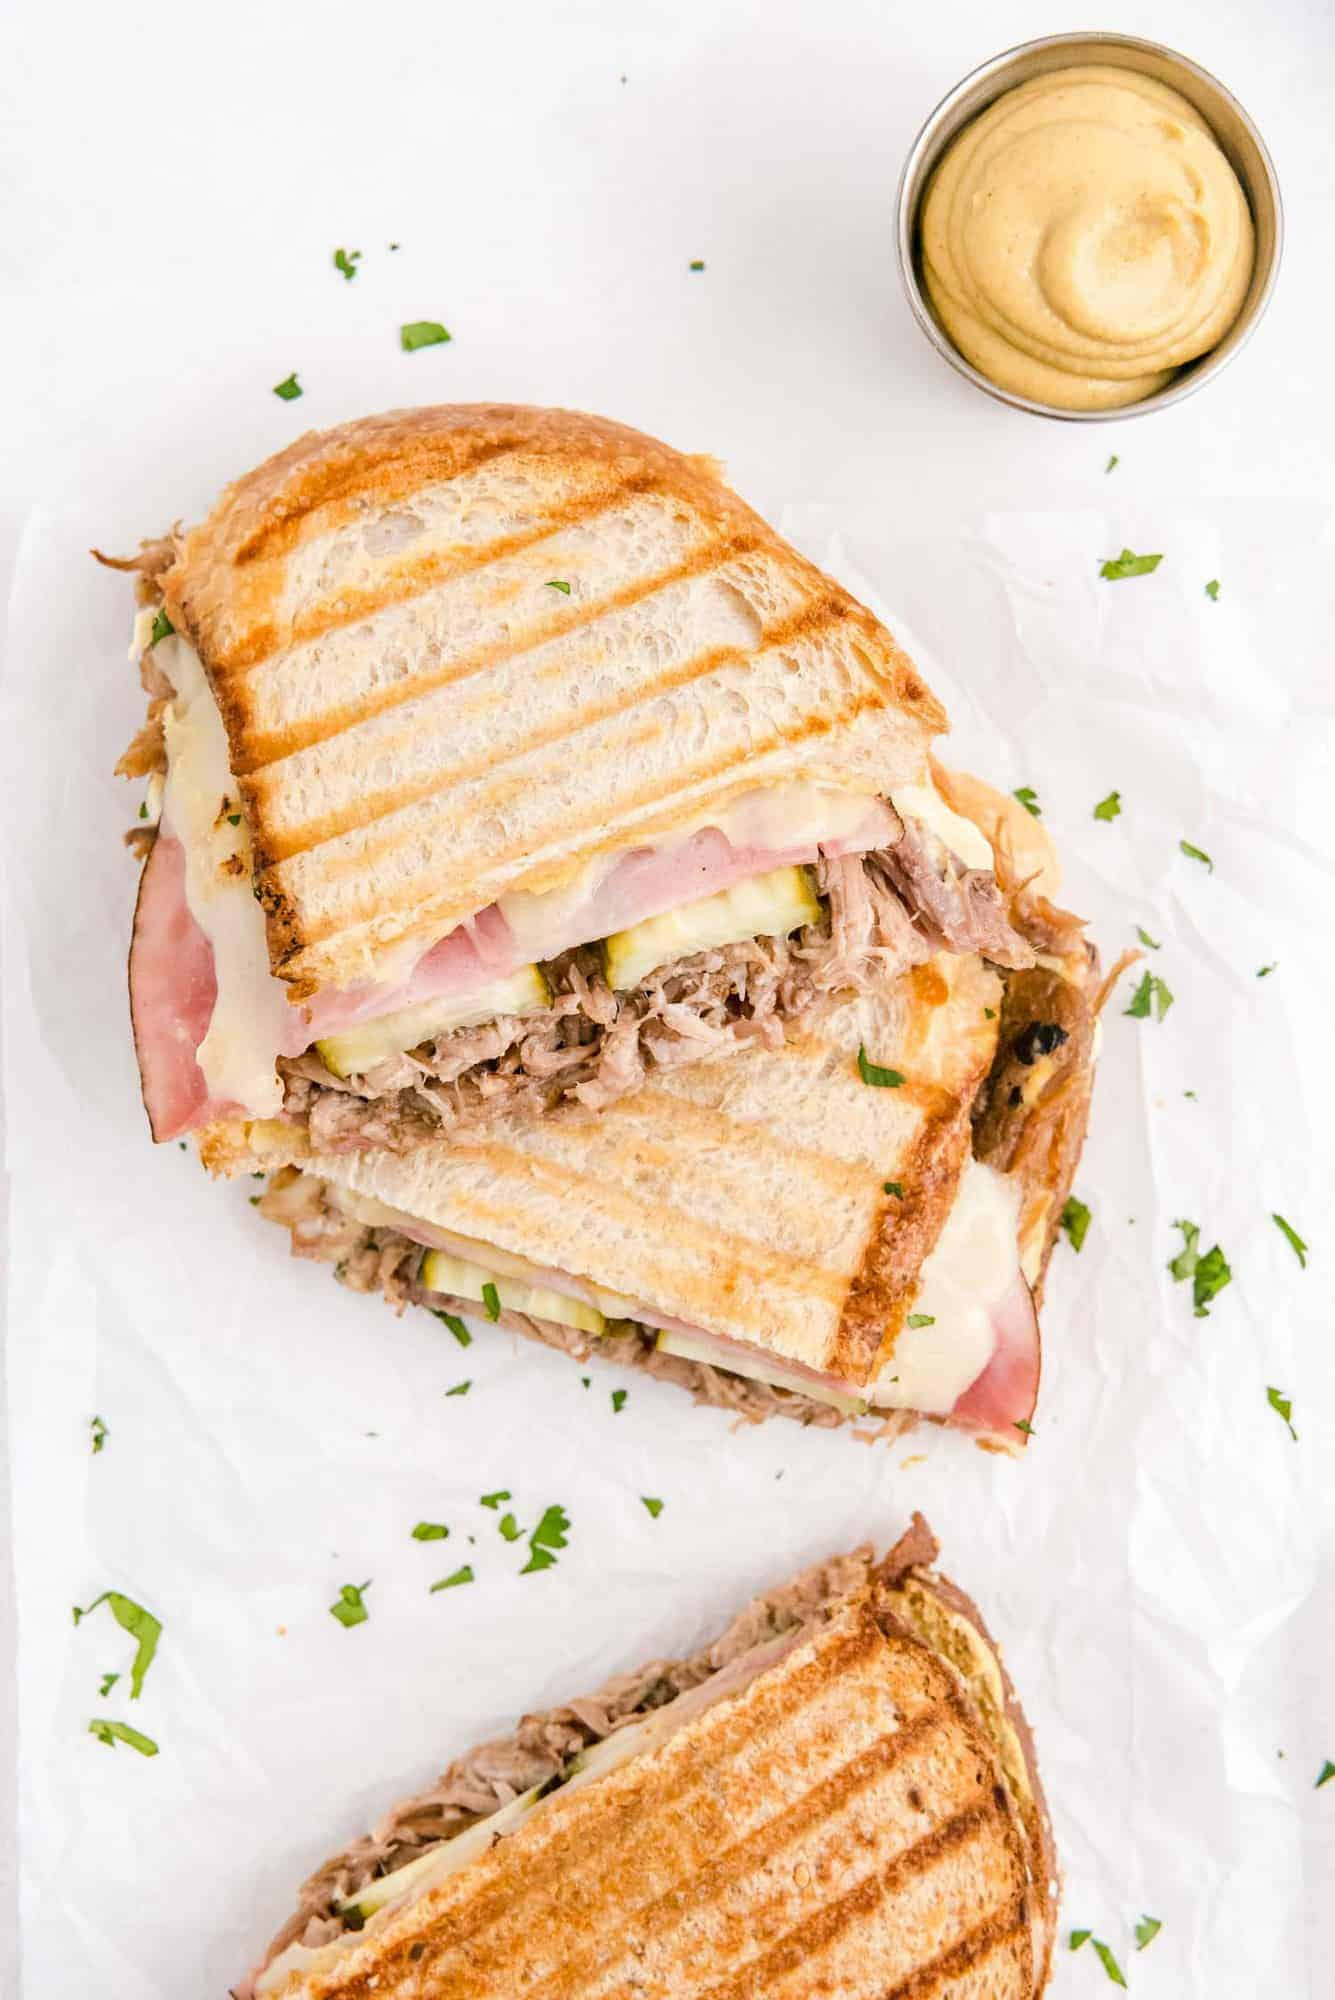 Overhead view of a cuban sandwich, cut in half, with a dish of mustard nearby.